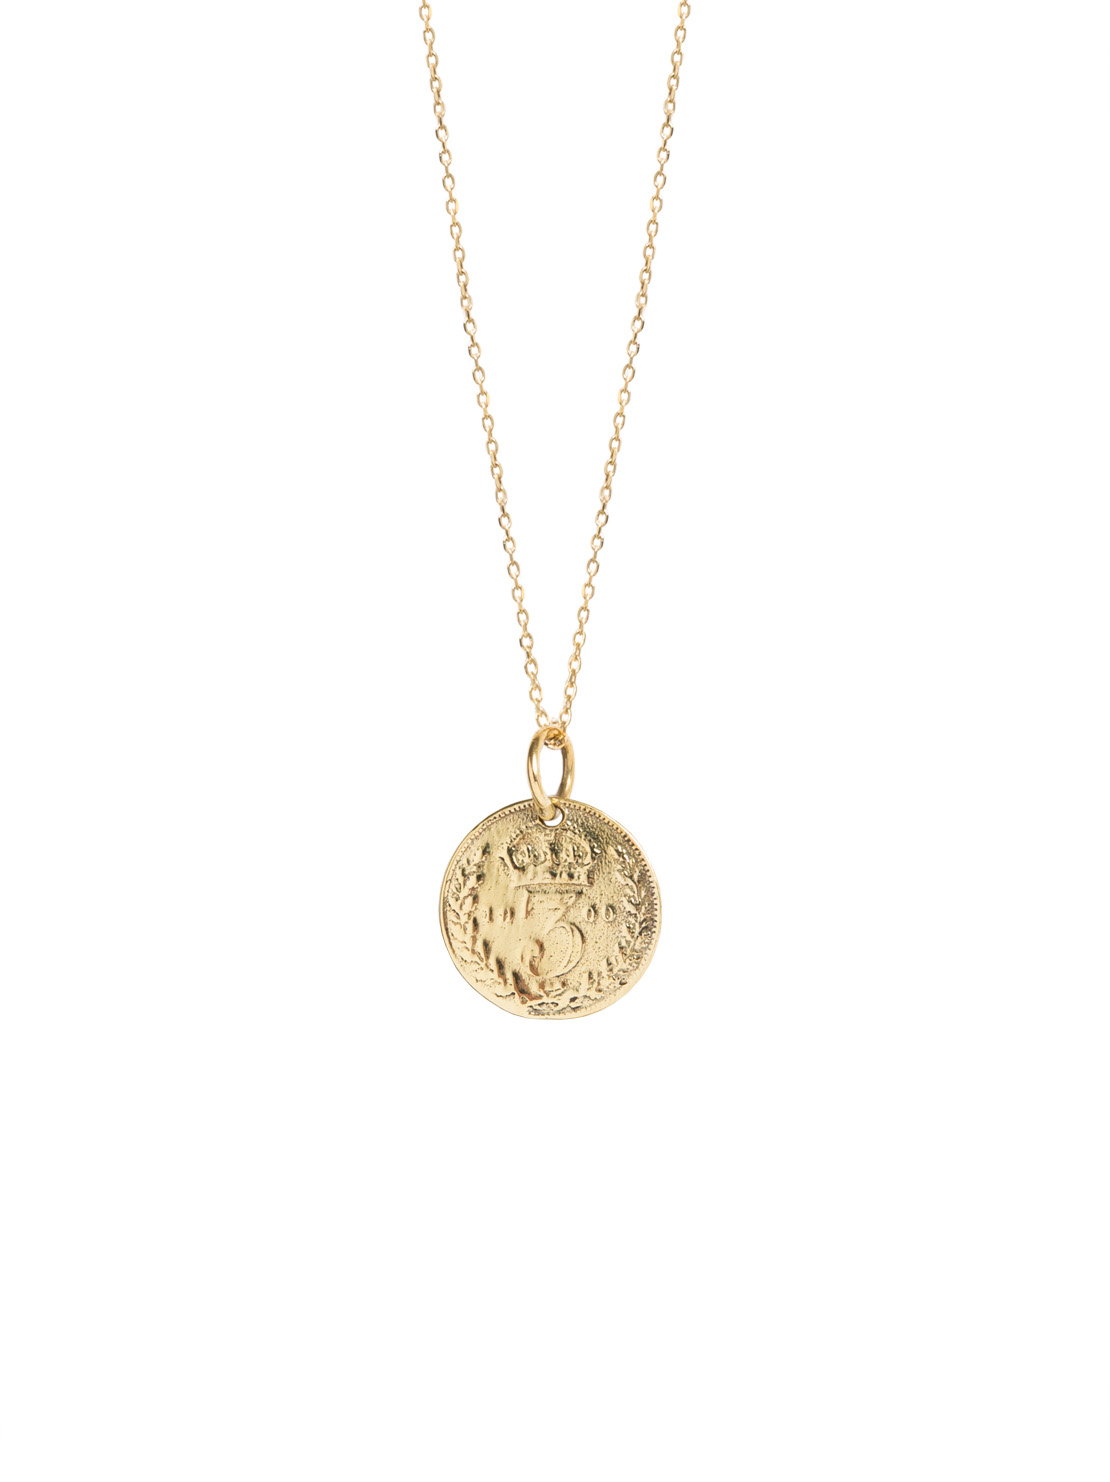 Gold Three Penny Piece On Trace Chain